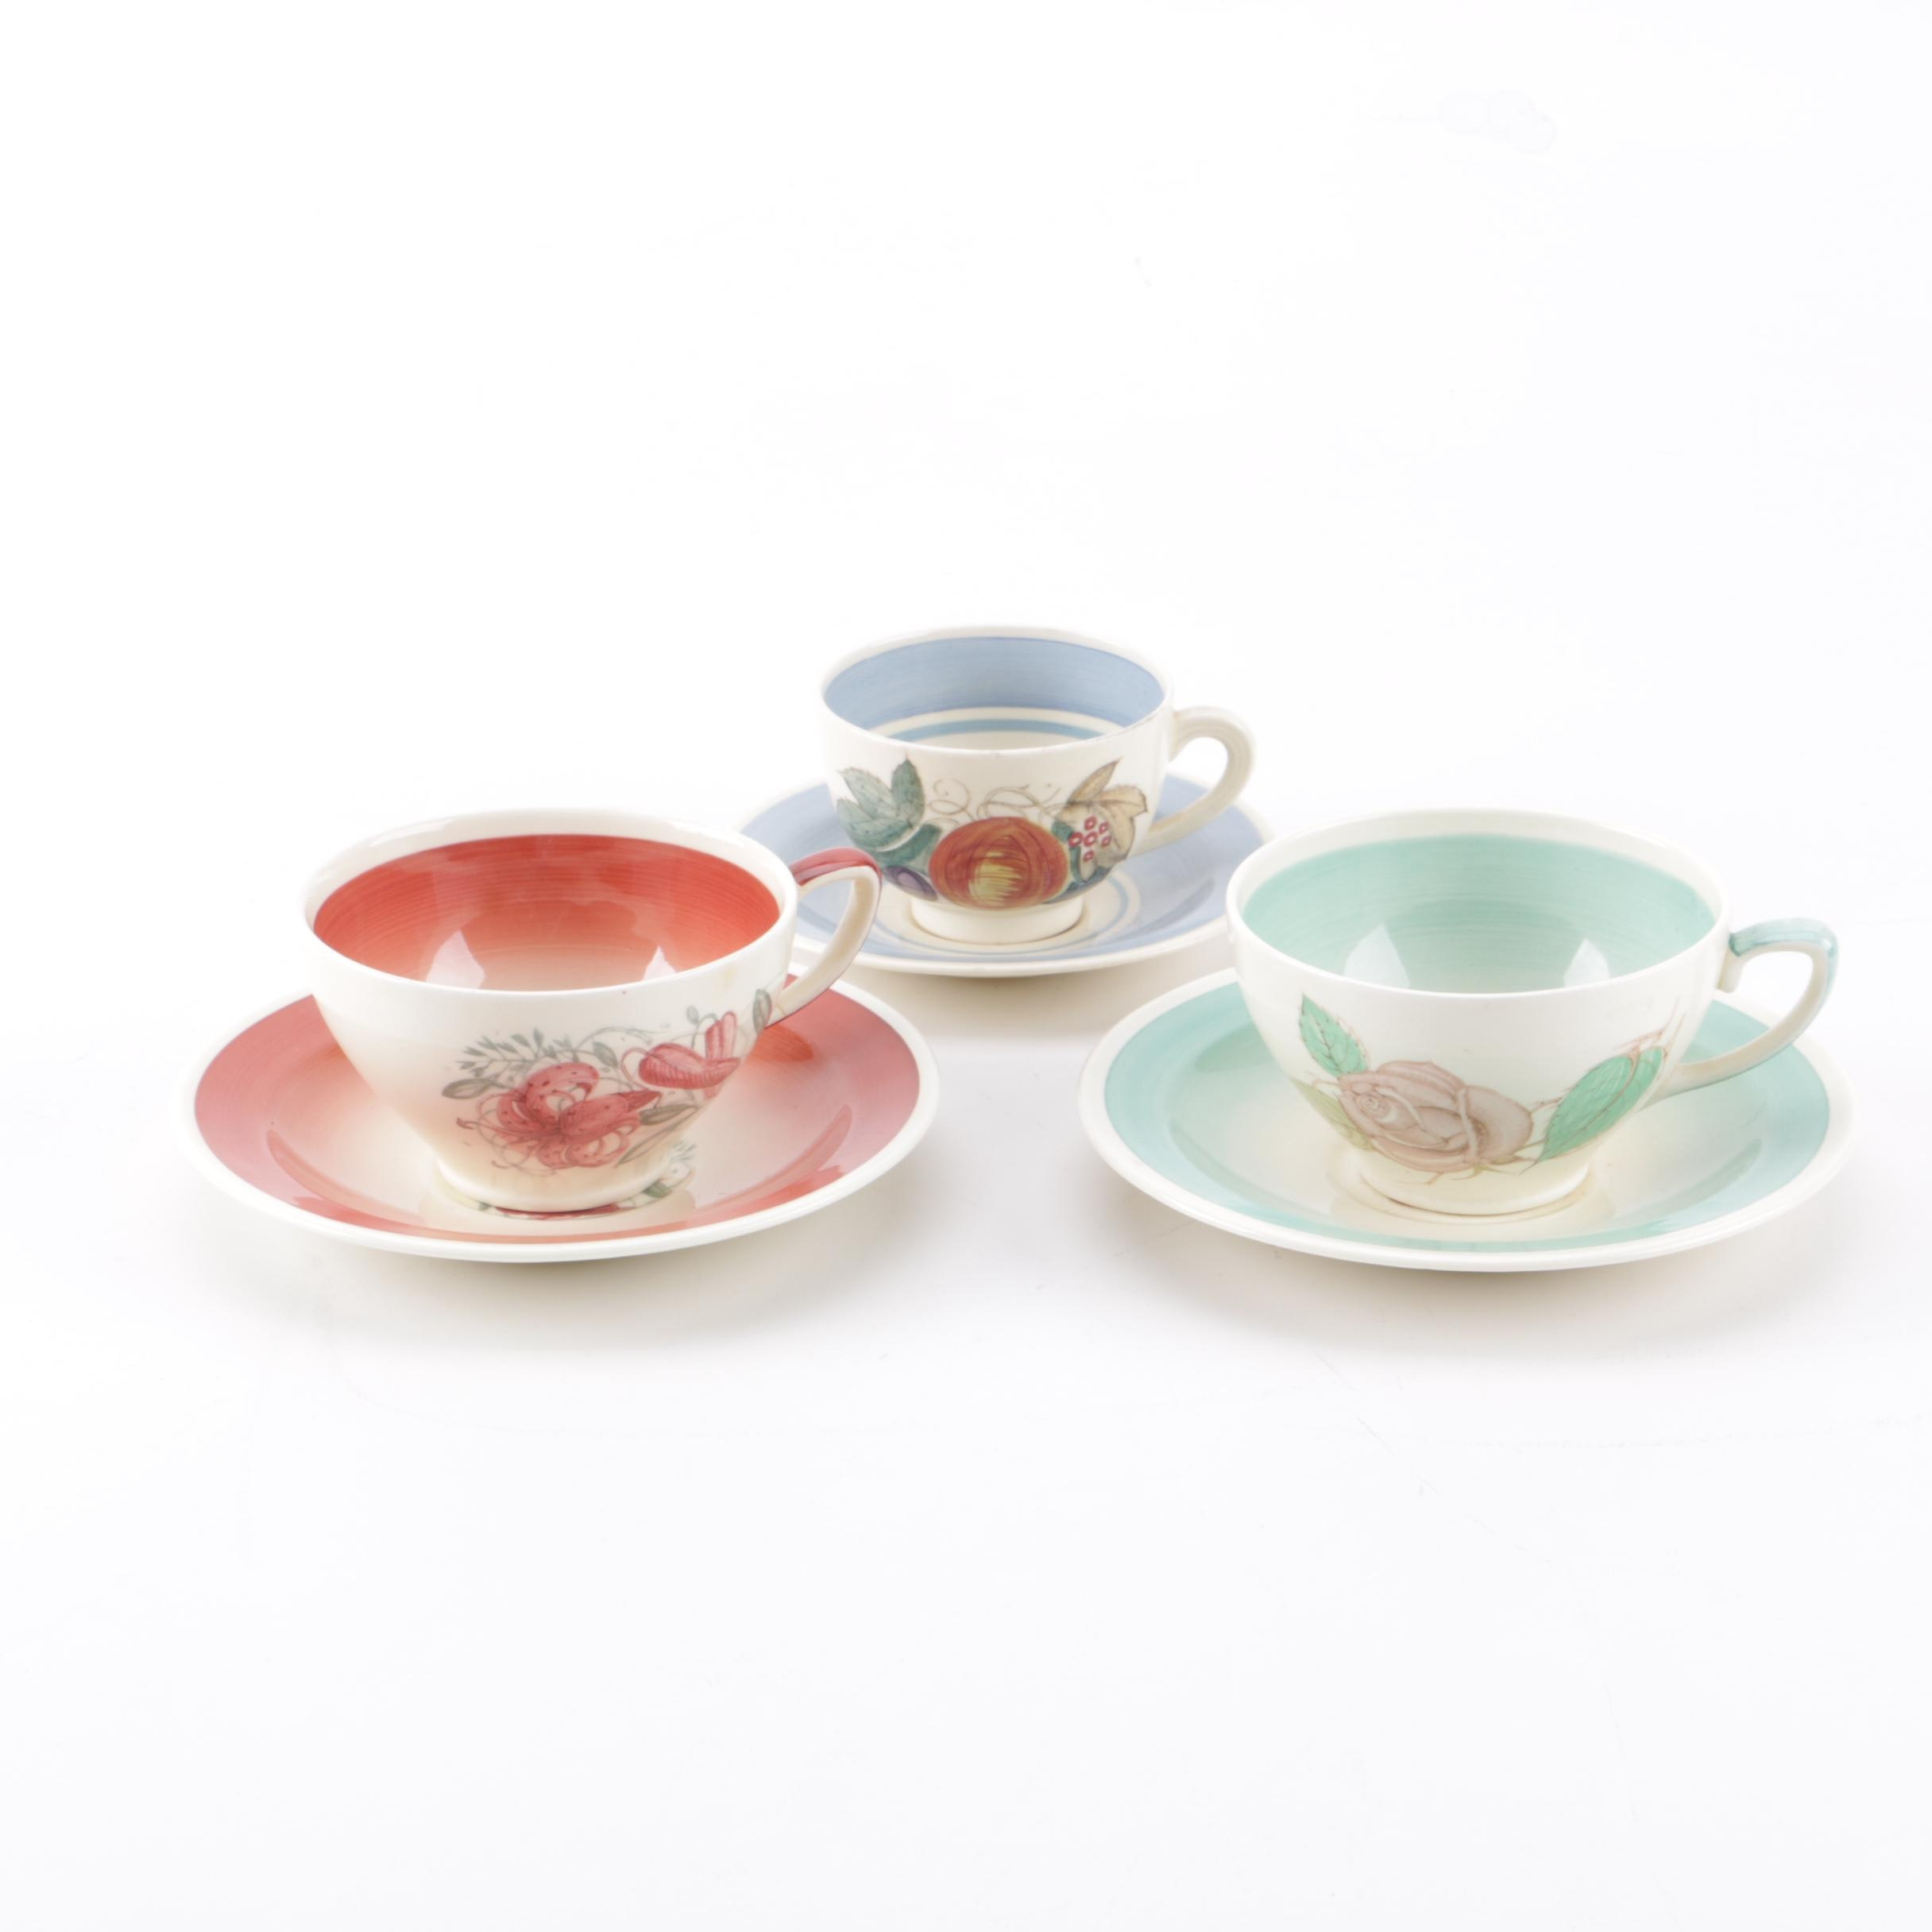 Tea Cups and Saucers including Susie Cooper